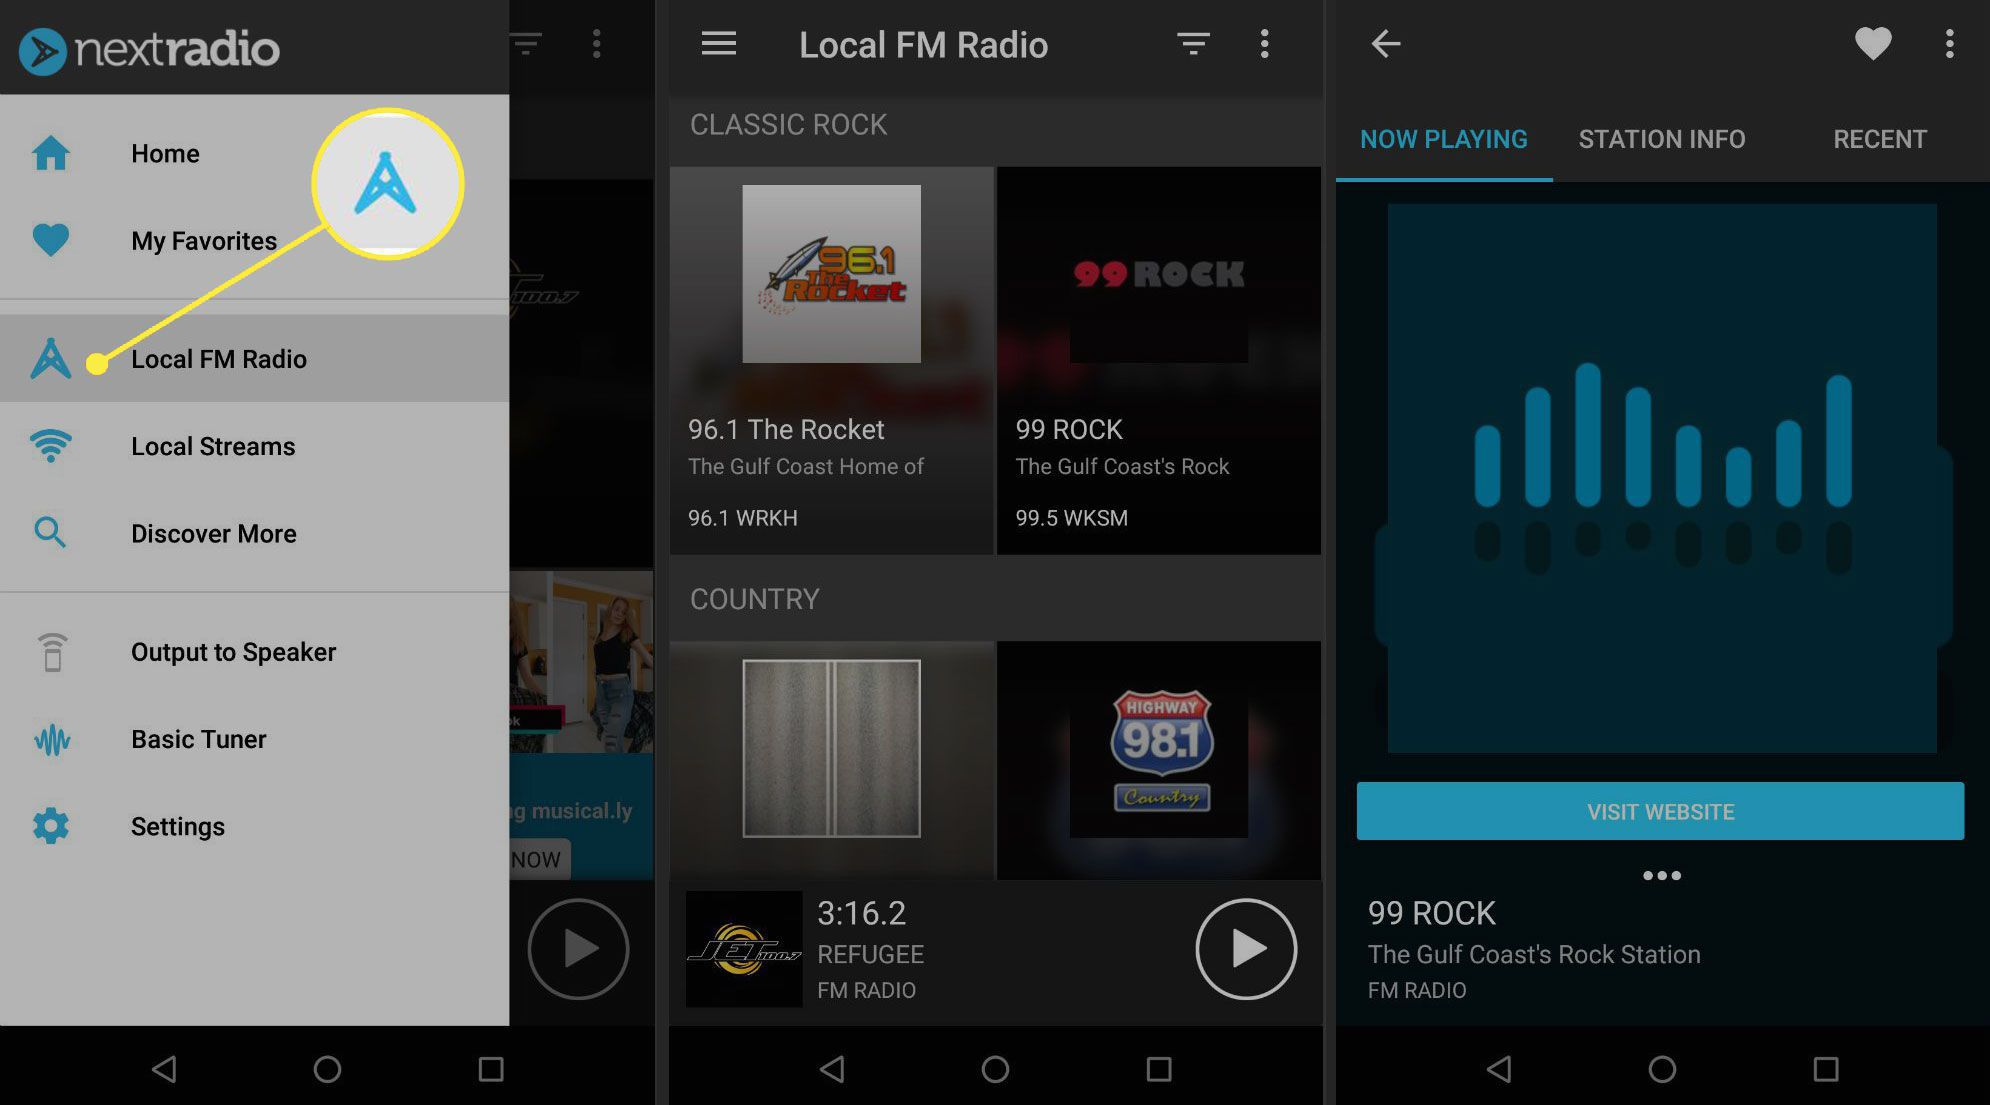 Selecting a local radio station in NextRadio